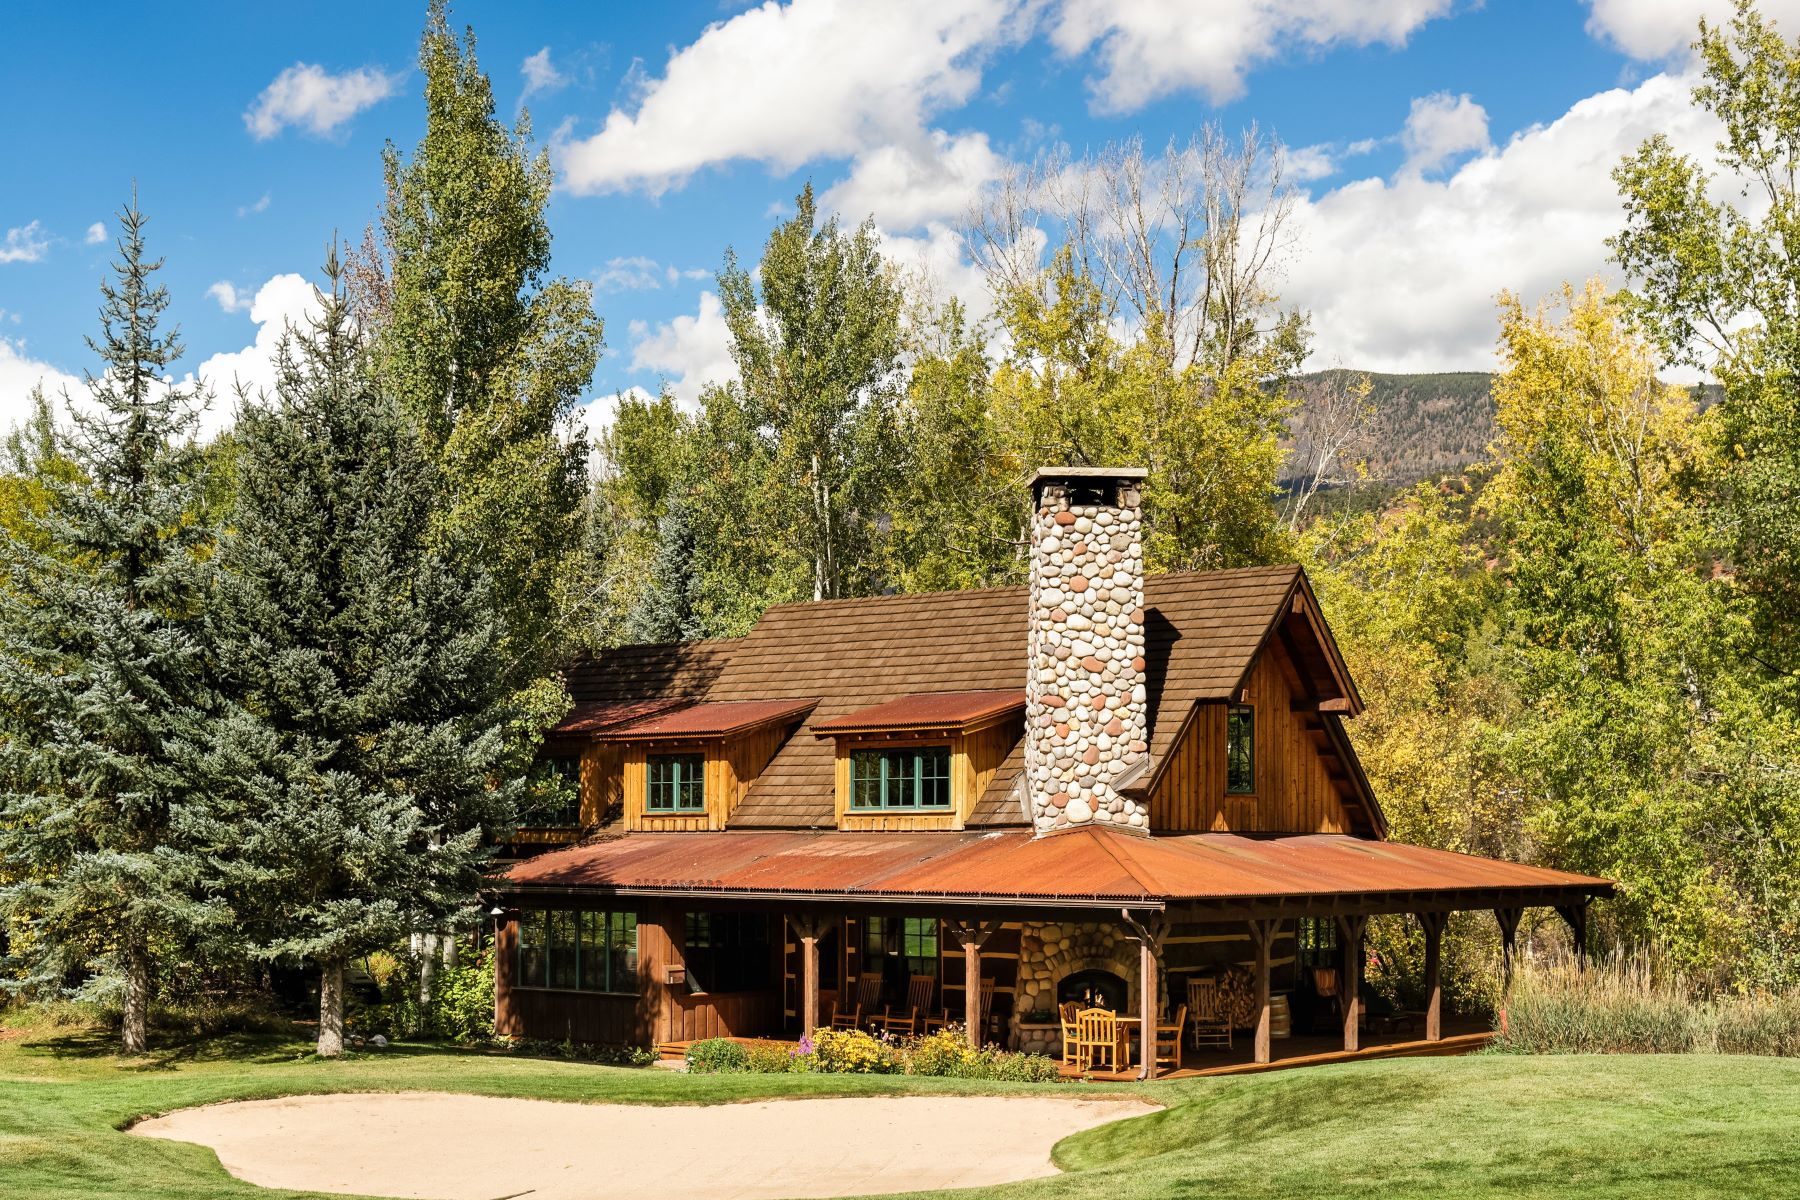 Fractional Ownership Properties for Sale at Roaring Fork Club 34 Altamira Ranch Road Basalt, Colorado 81621 United States